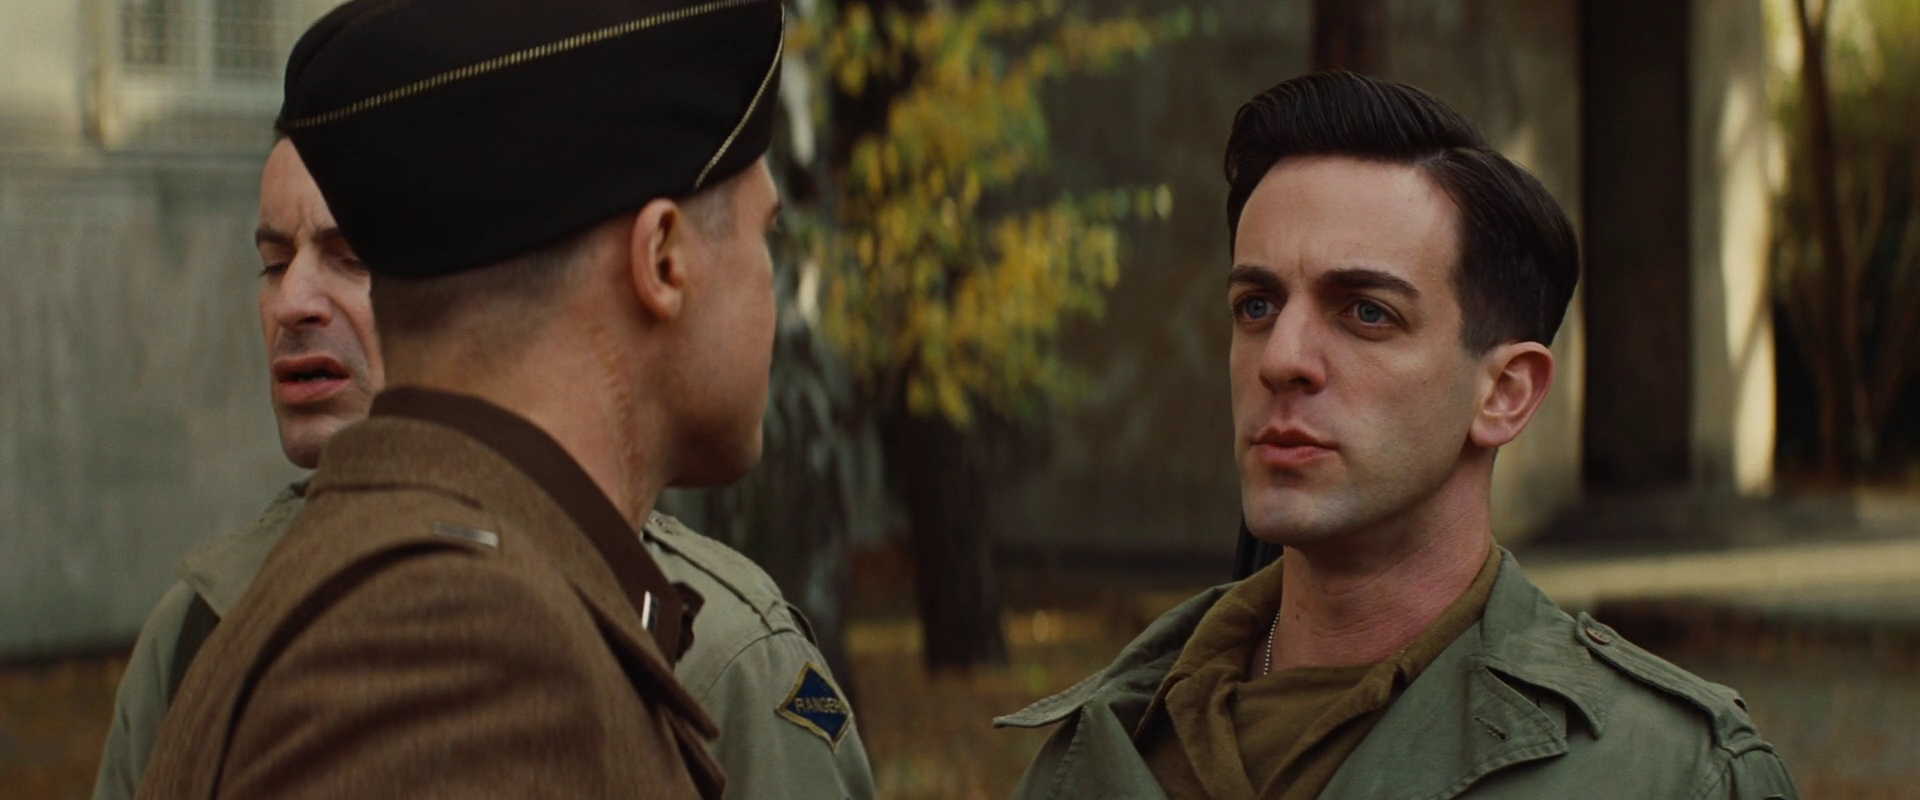 smithson utivich inglourious basterds wiki fandom powered by wikia smithson utivich